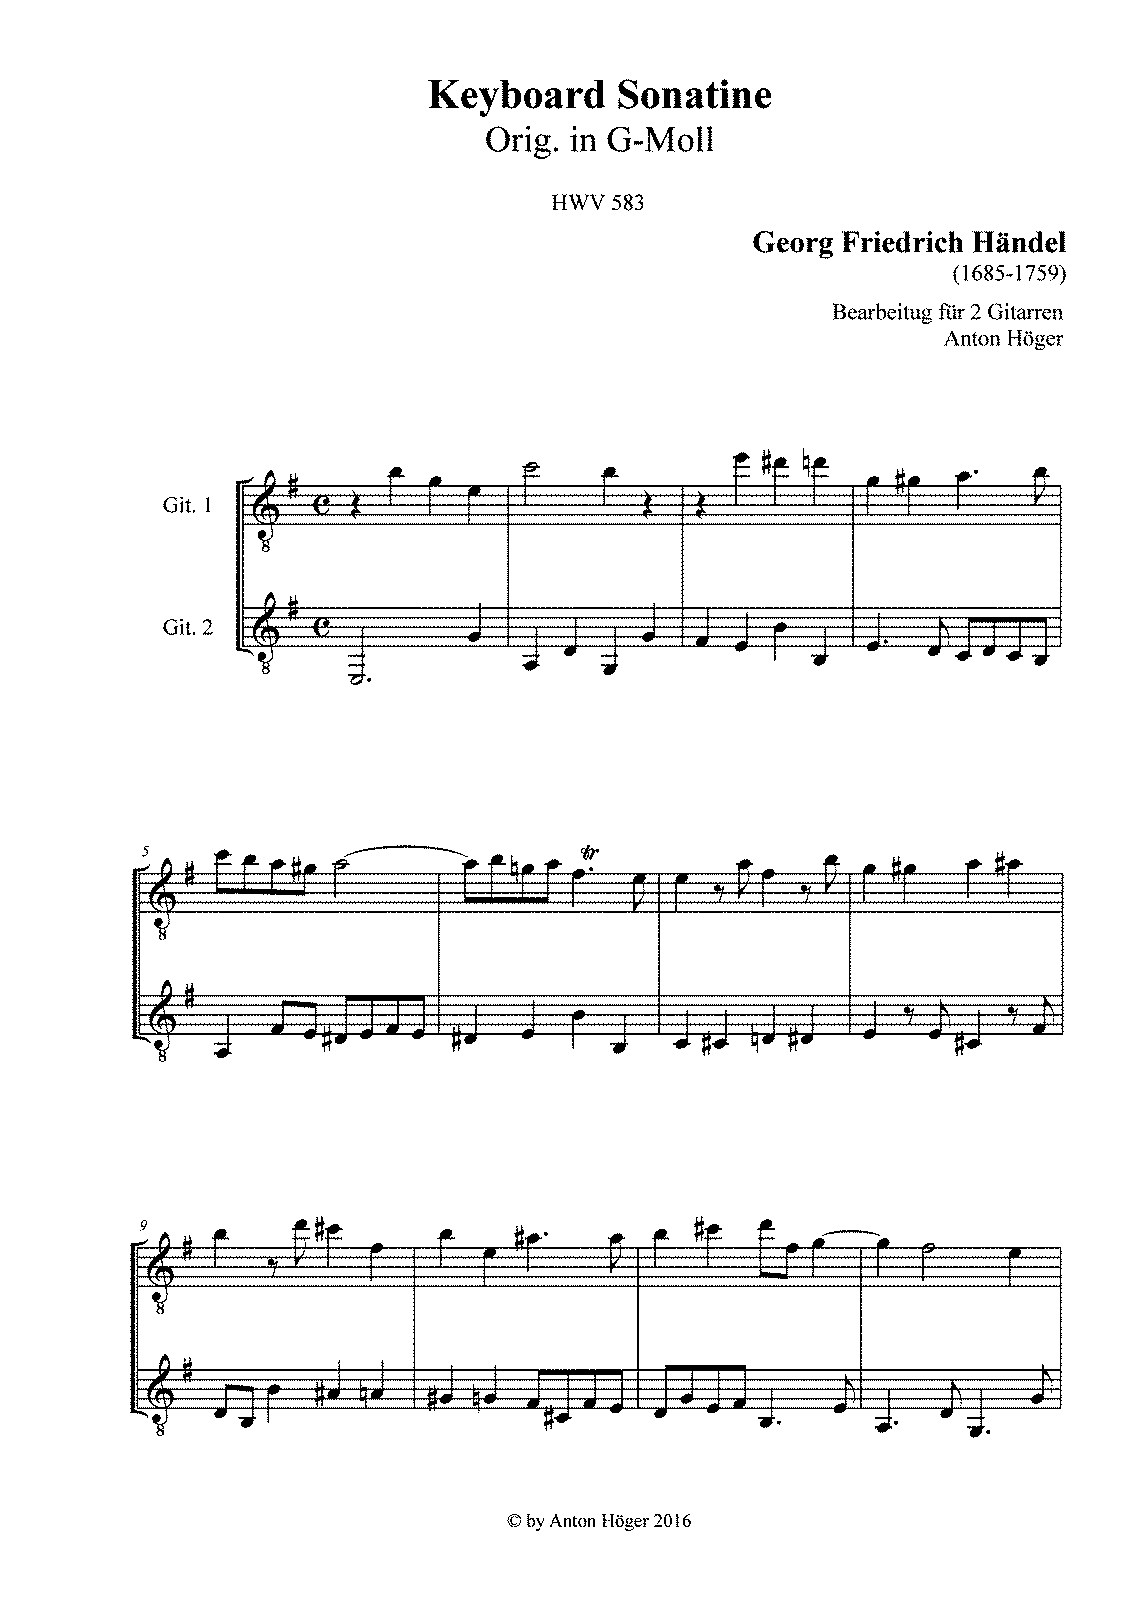 PMLP254169-Händel, Georg Friedrich - Keyboard Sonatina in G minor, HWV 583-2Git.pdf